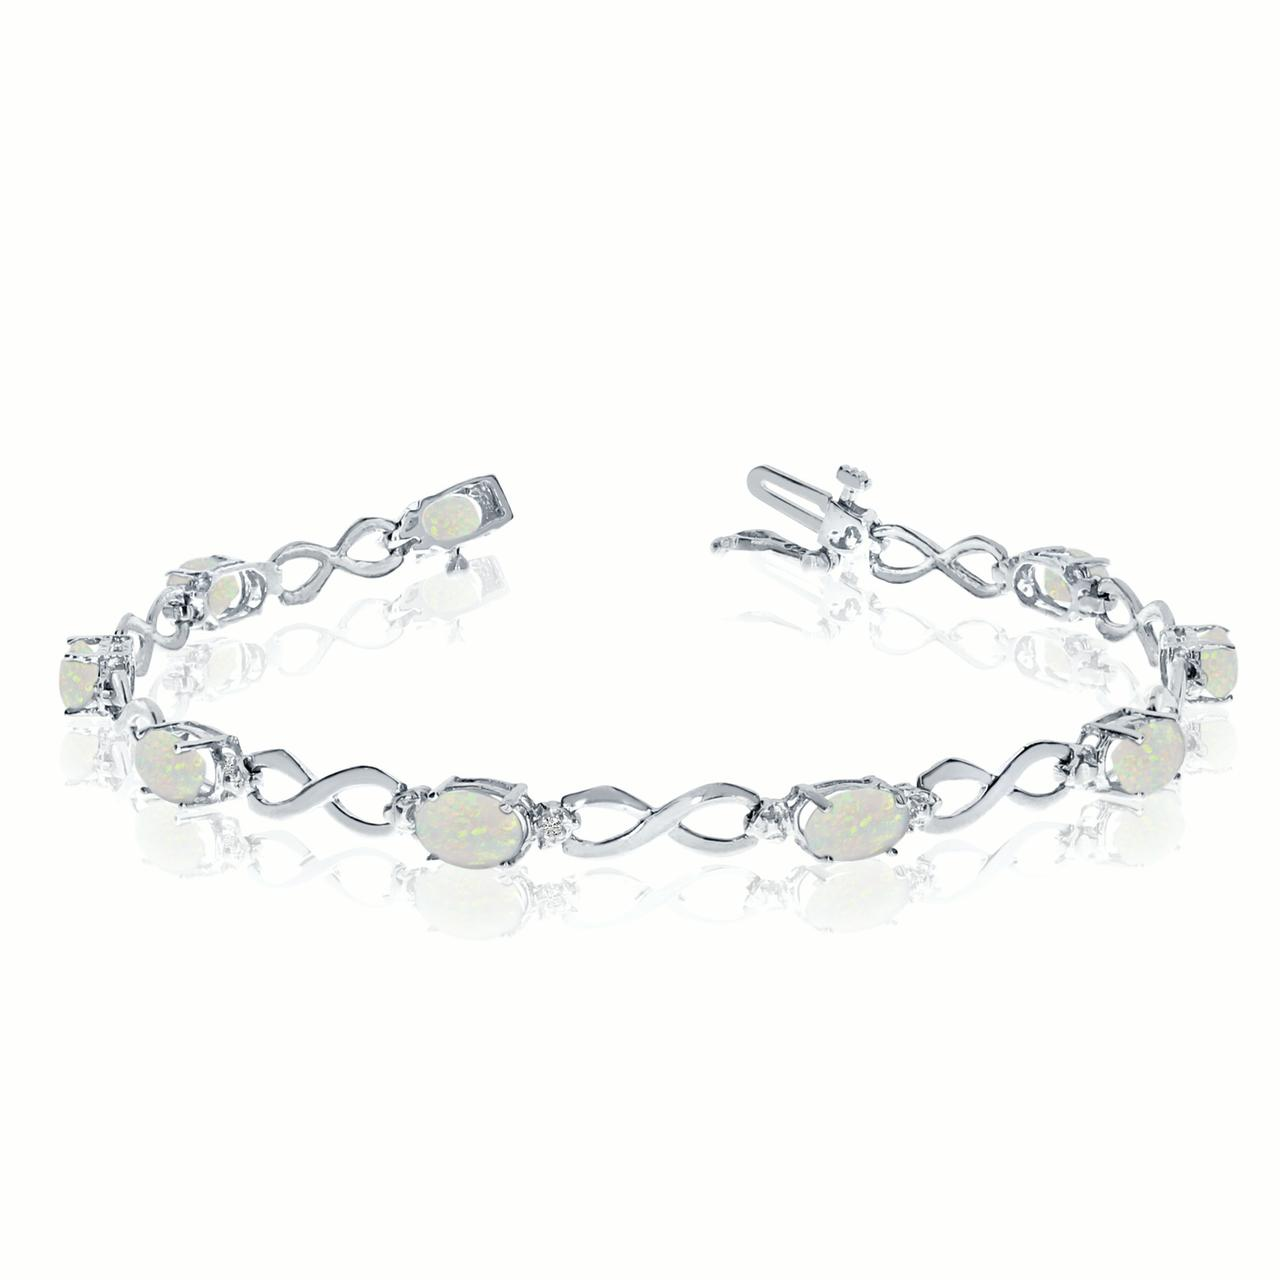 14K White Gold Oval Opal and Diamond Bracelet by LCD